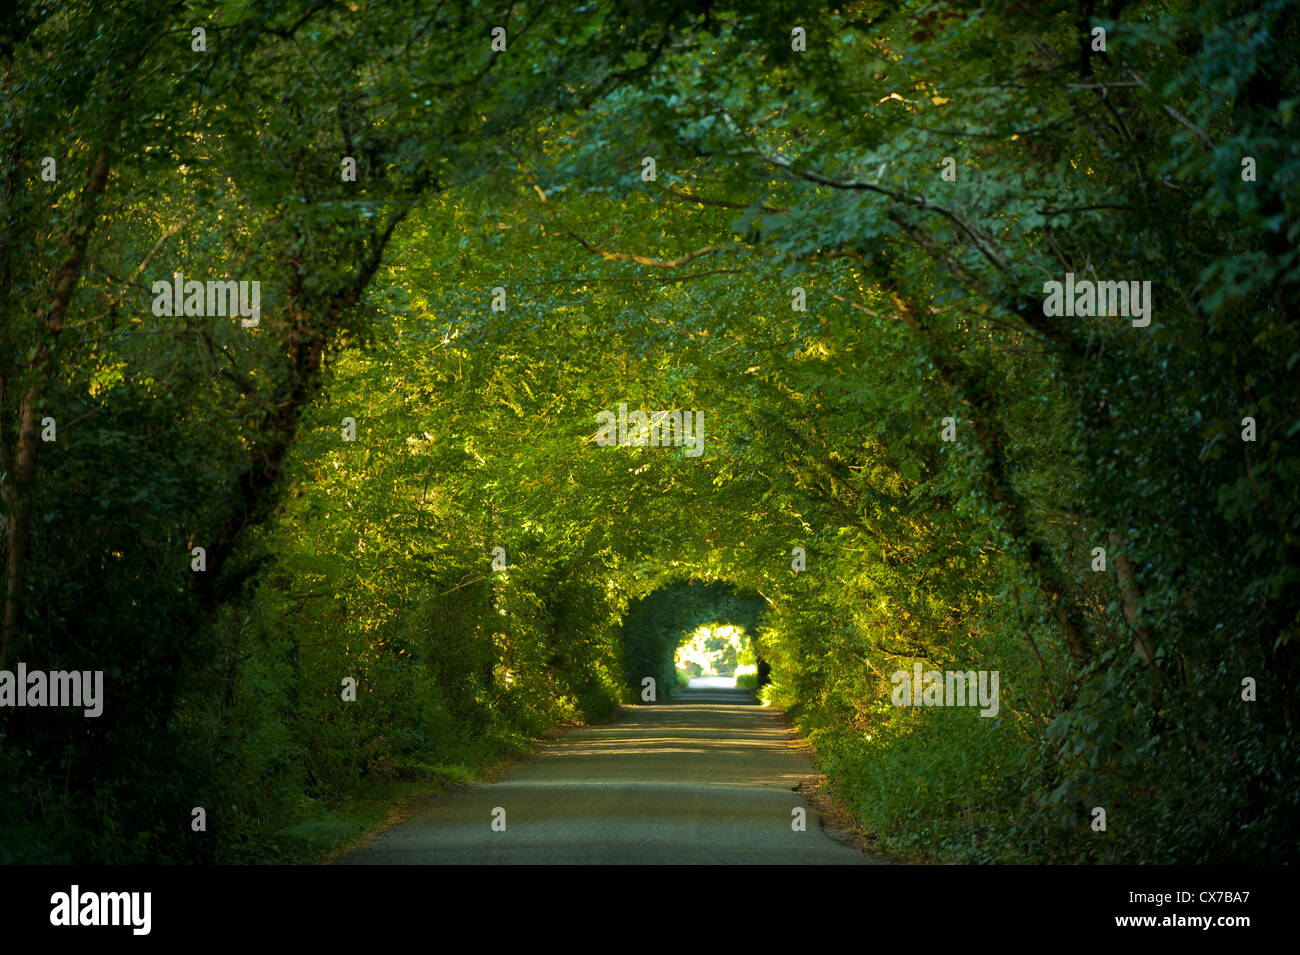 Image result for canopied roadway